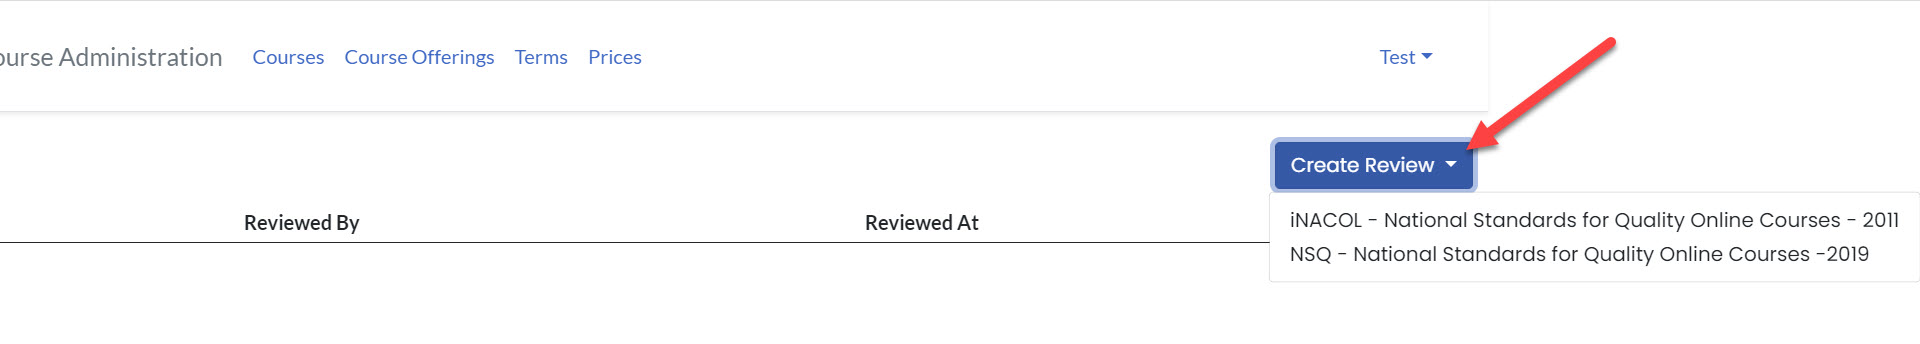 An arrow points to the Create Review drop-down button which is expanded to show options as mentioned above.